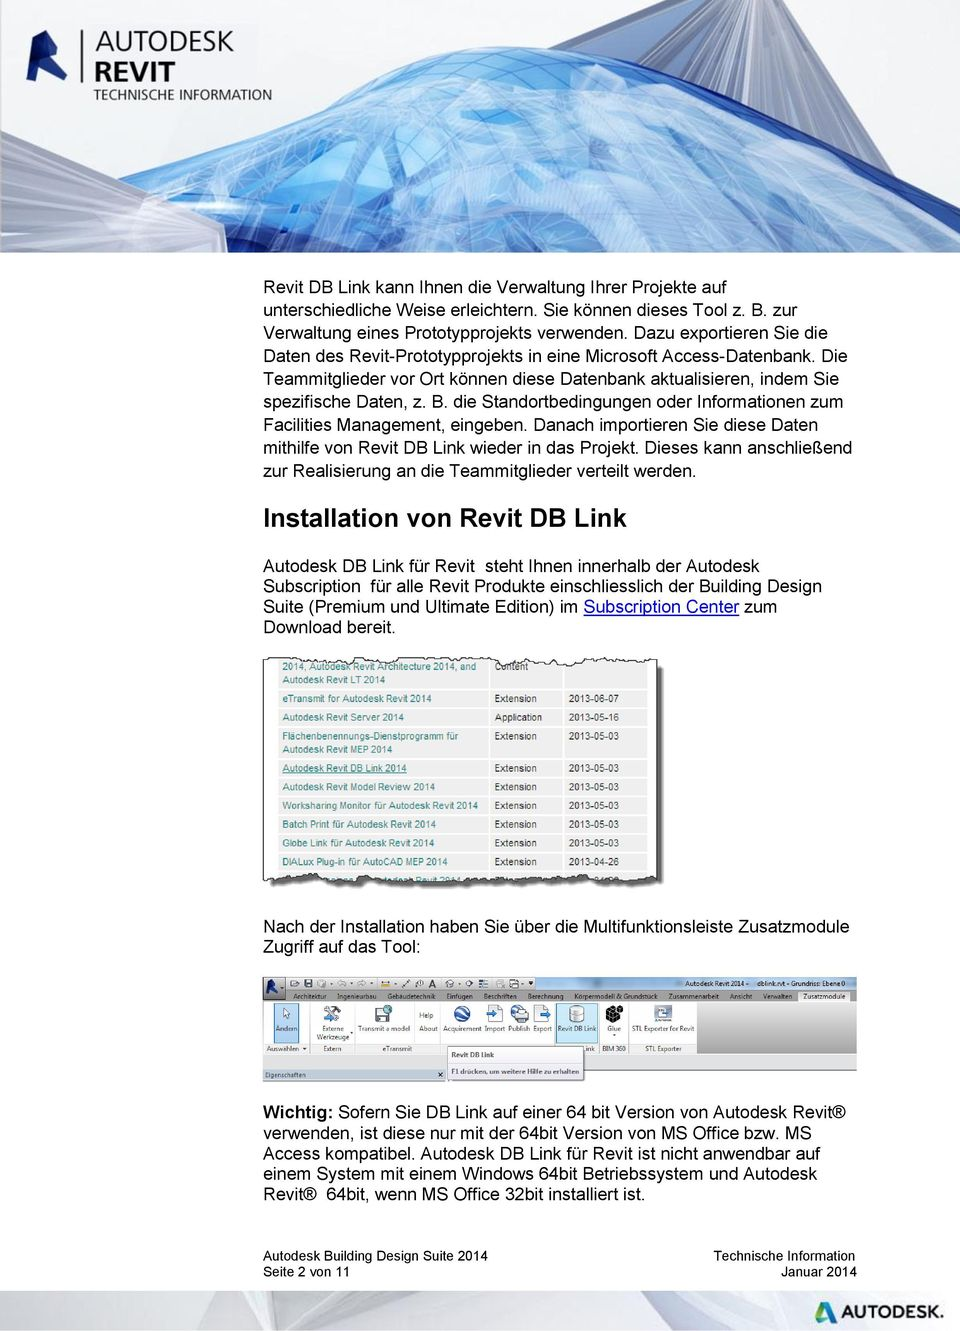 Installation von Revit DB Link - PDF